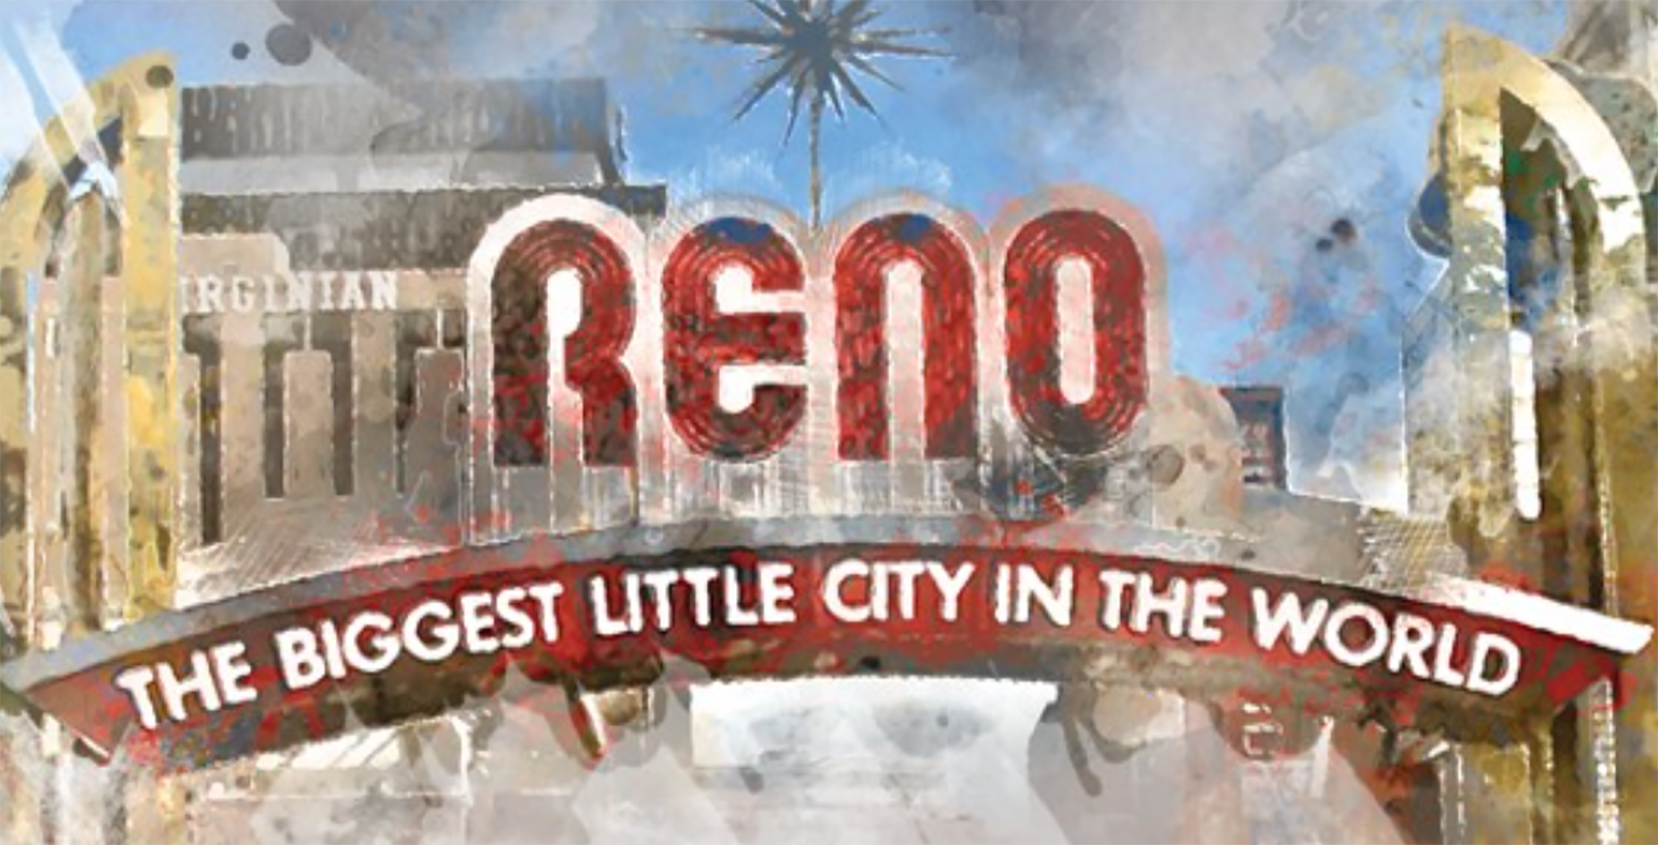 Illustration of the Reno sign.